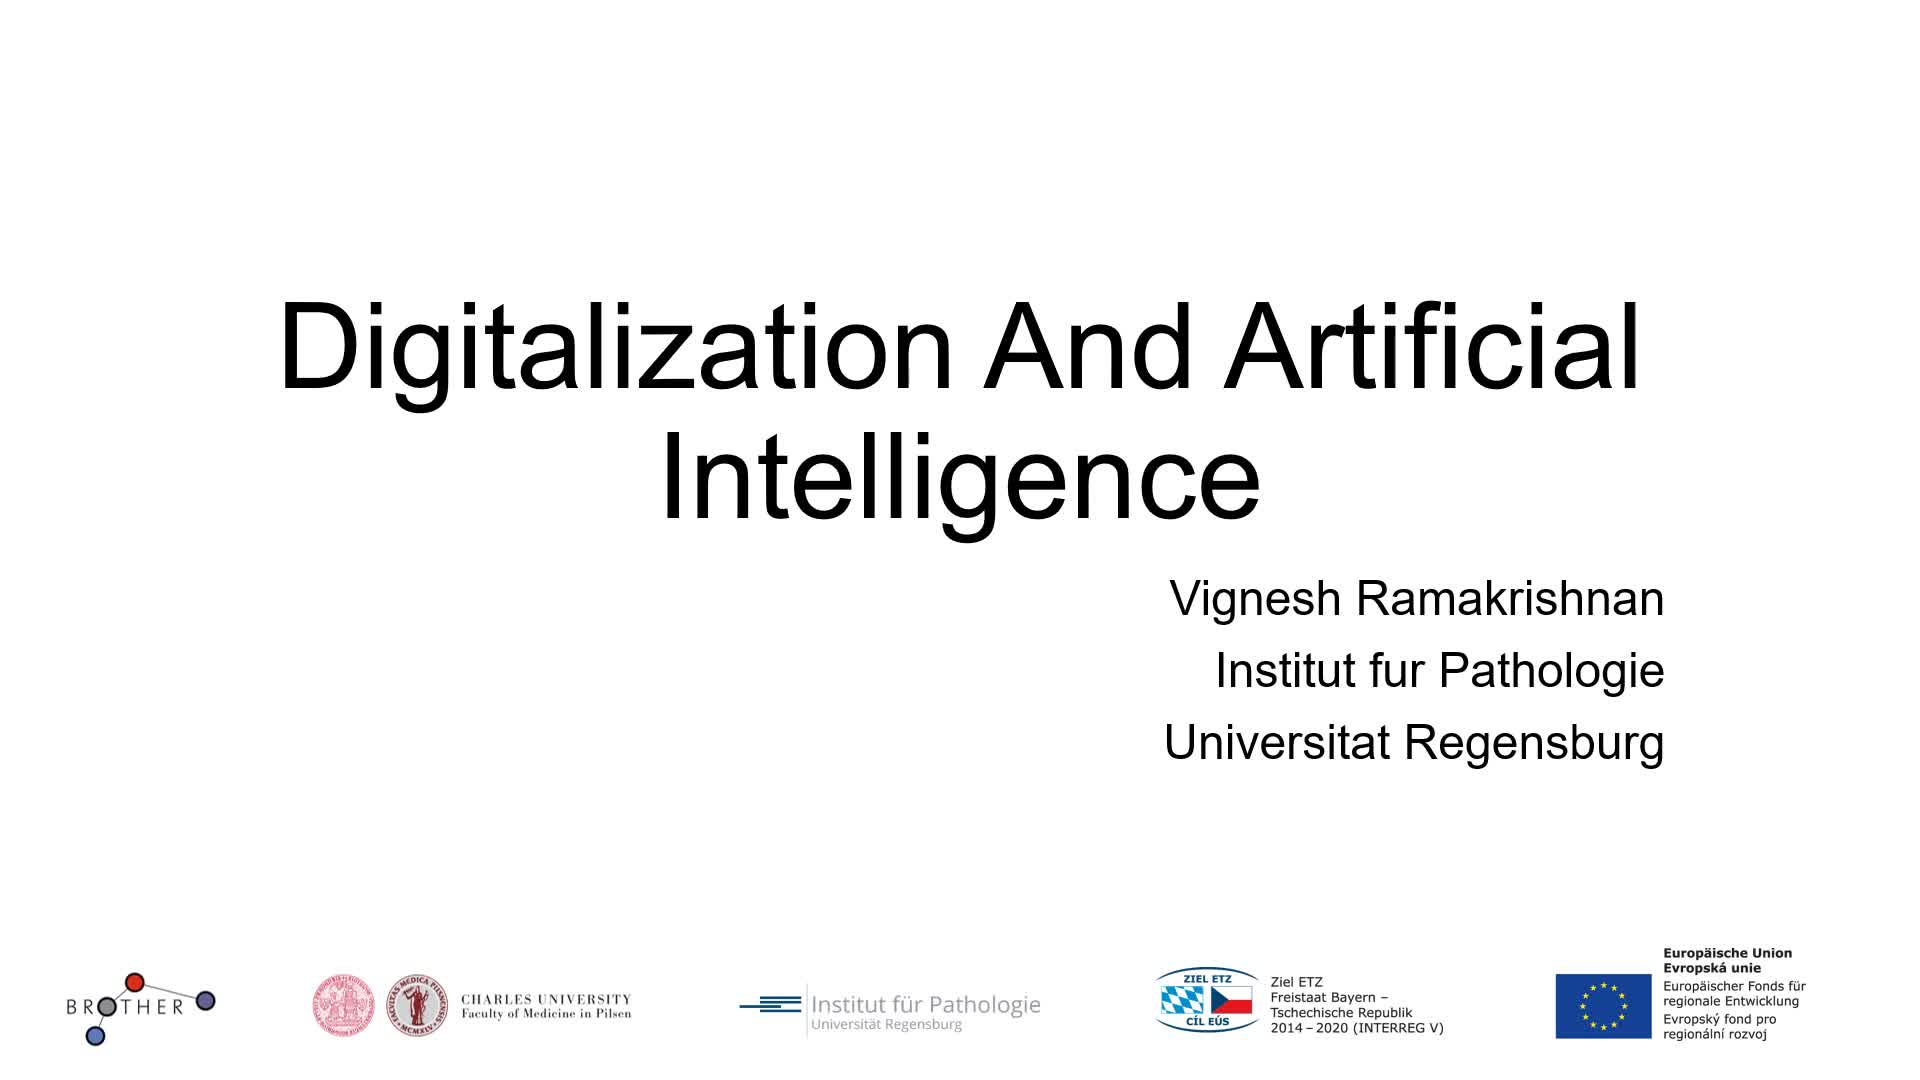 Digitalization and Artificial Intelligence